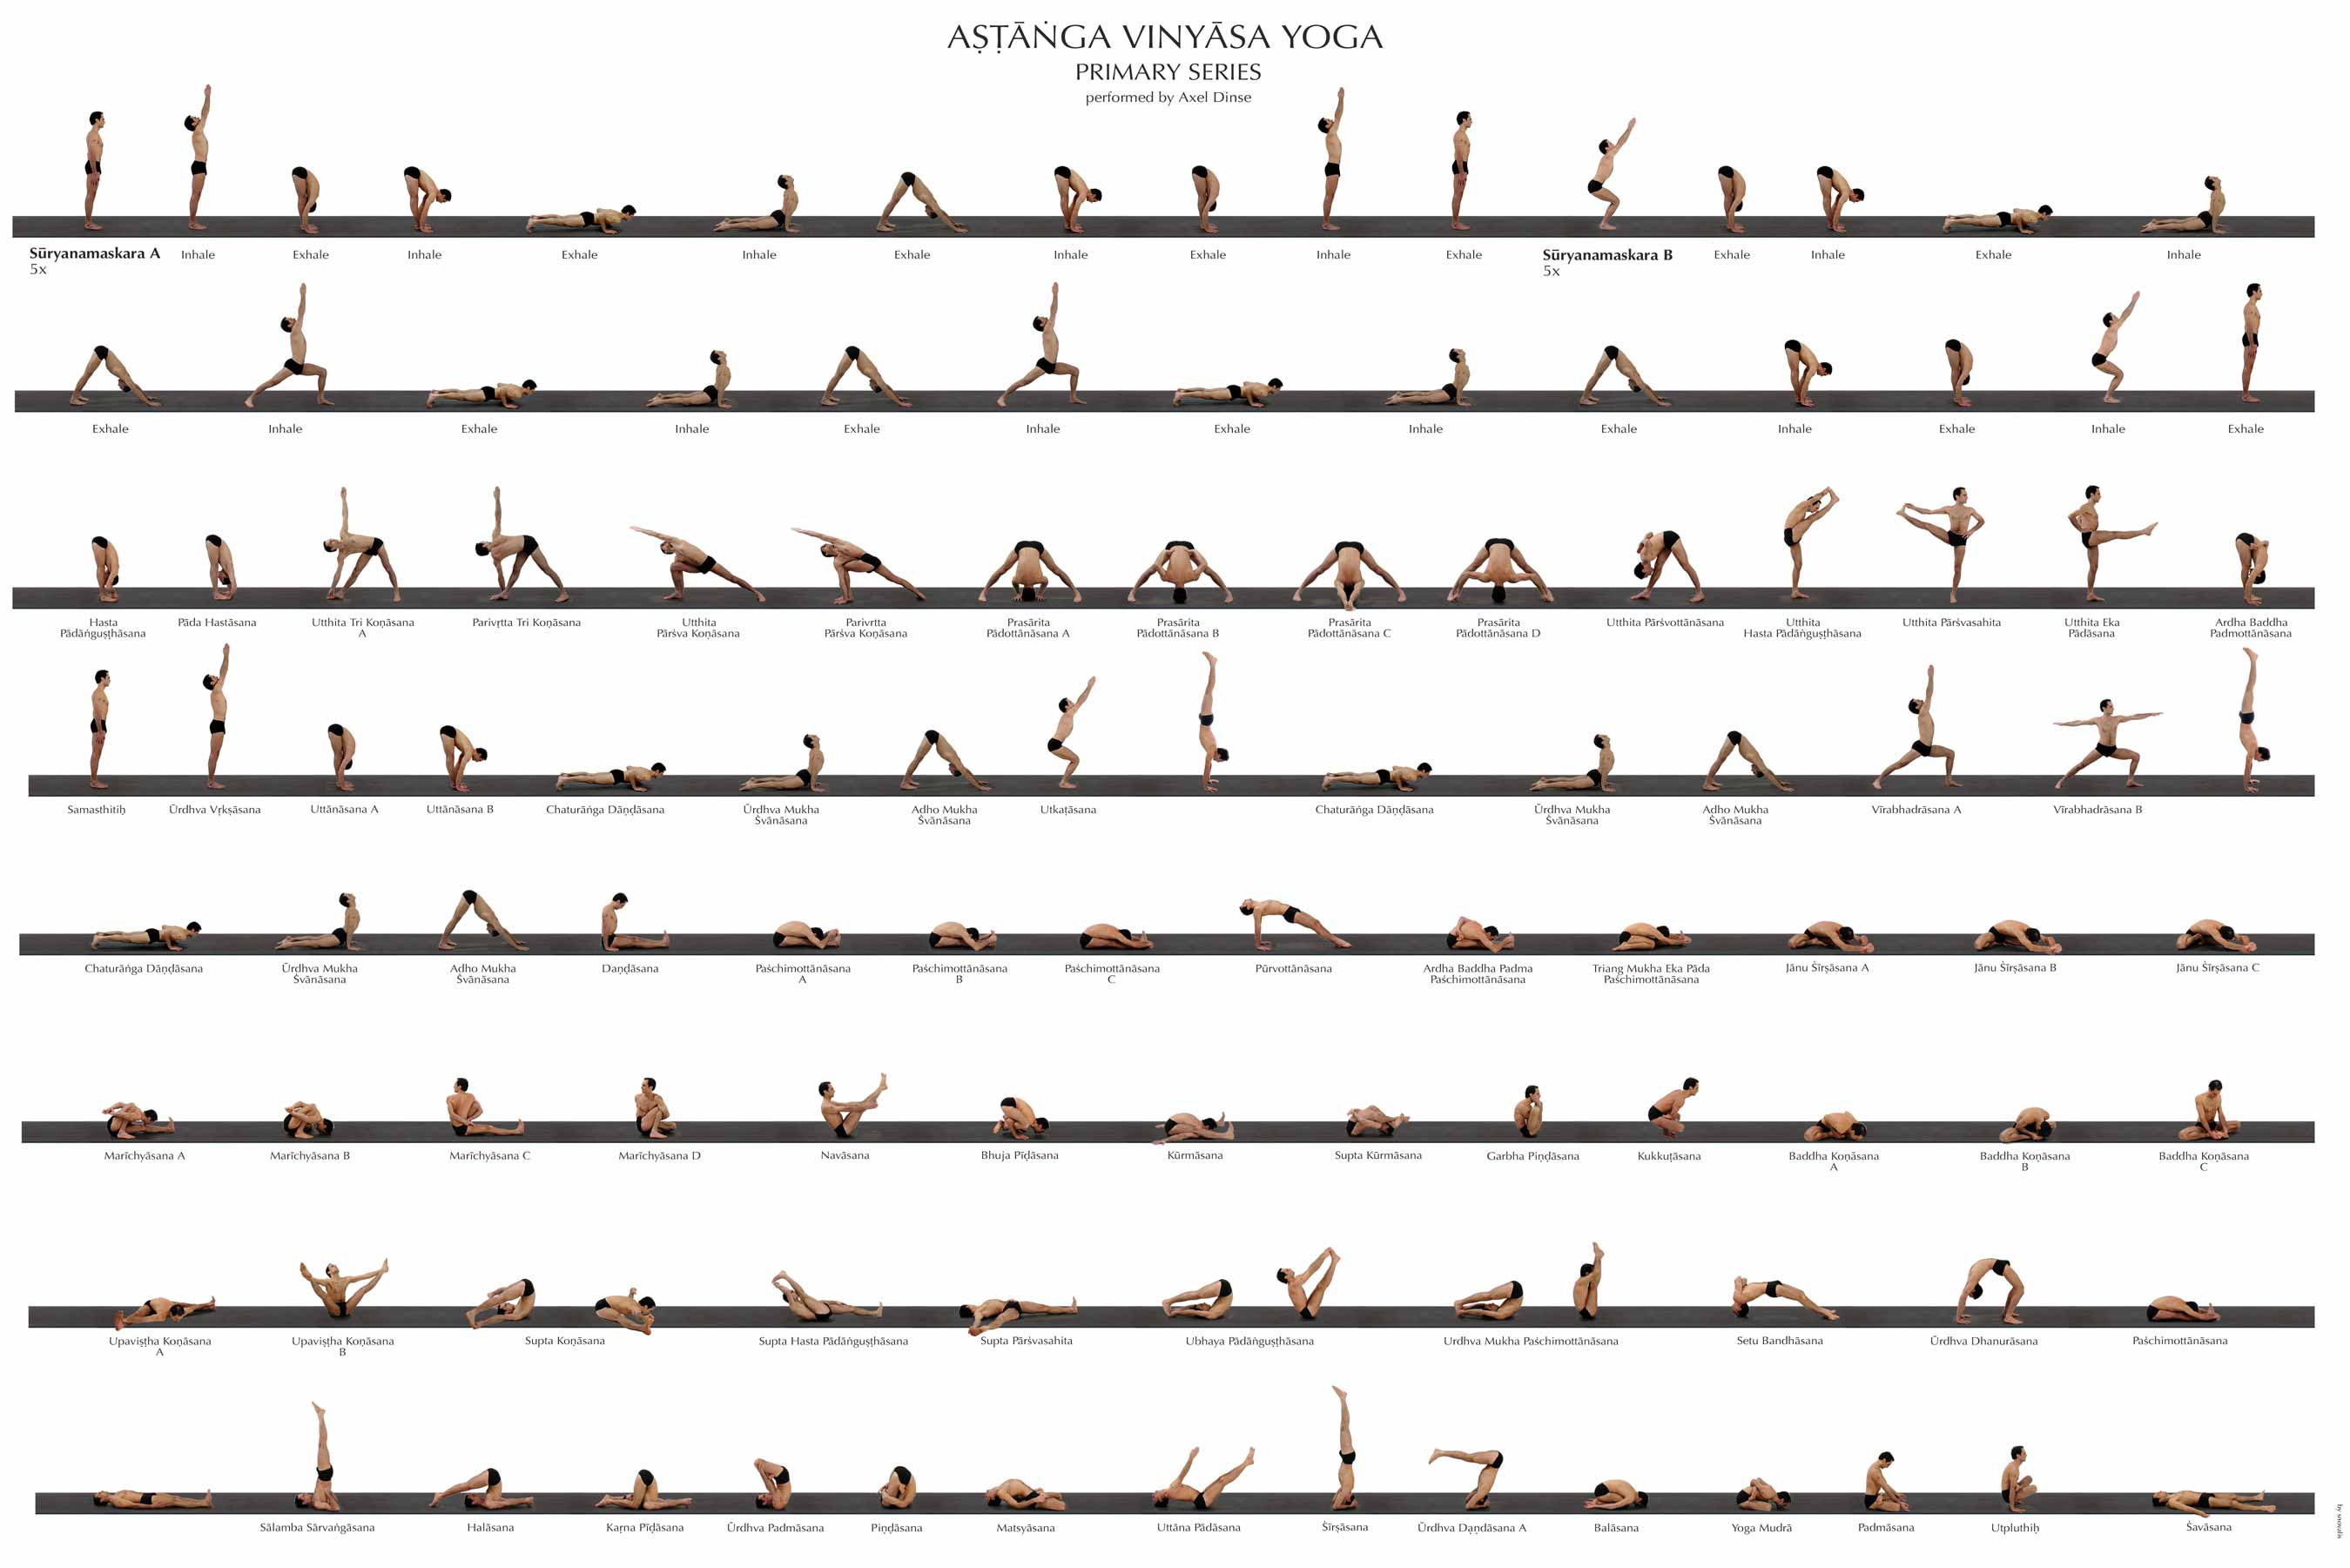 Brief About Ashtanga Vinyasa Yoga Primary Series